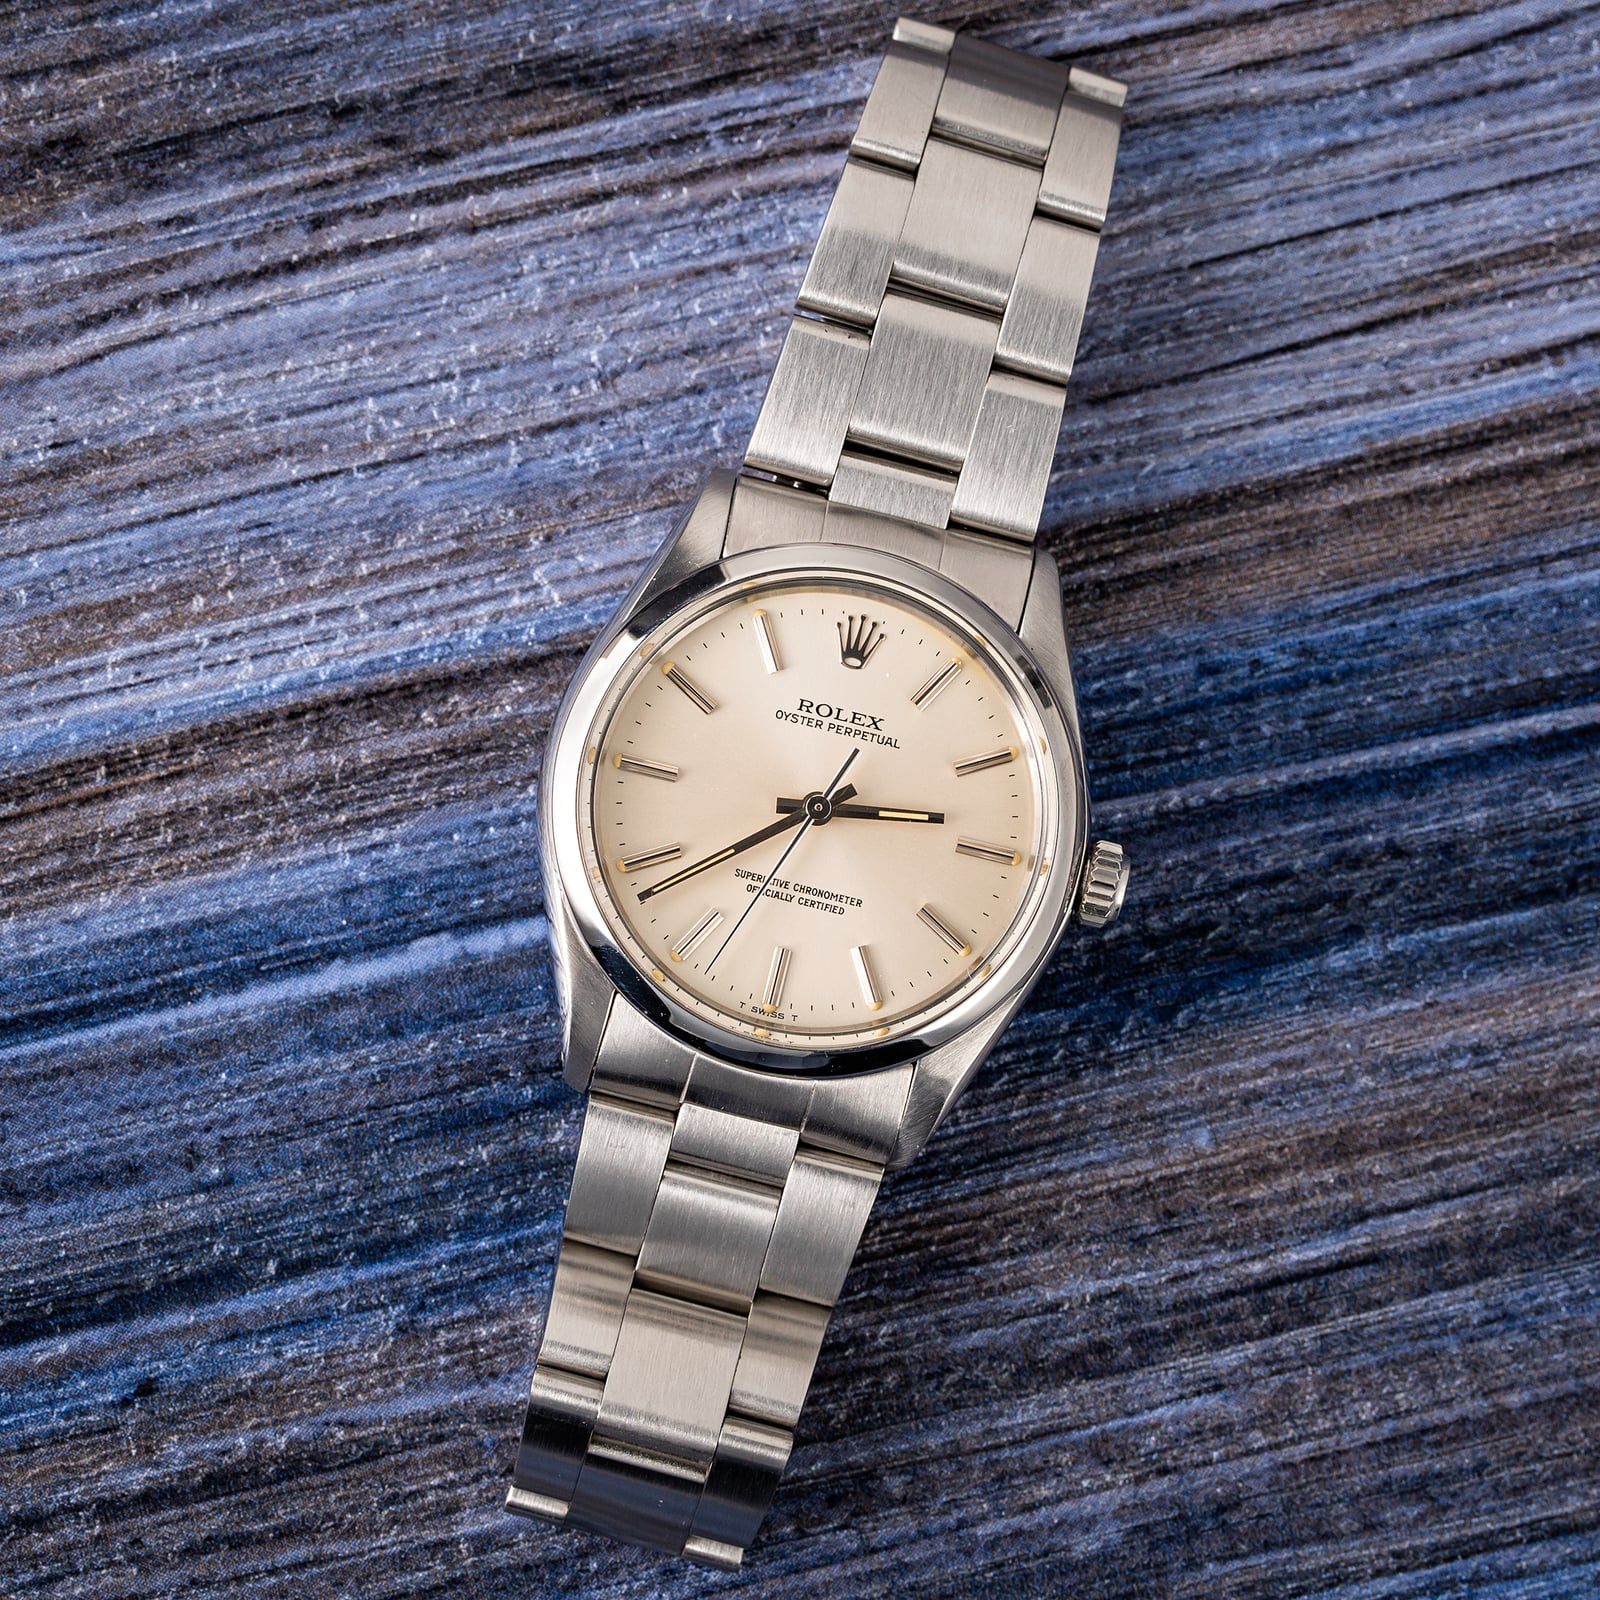 Rolex Oyster Perpetual 1002 vintage reference